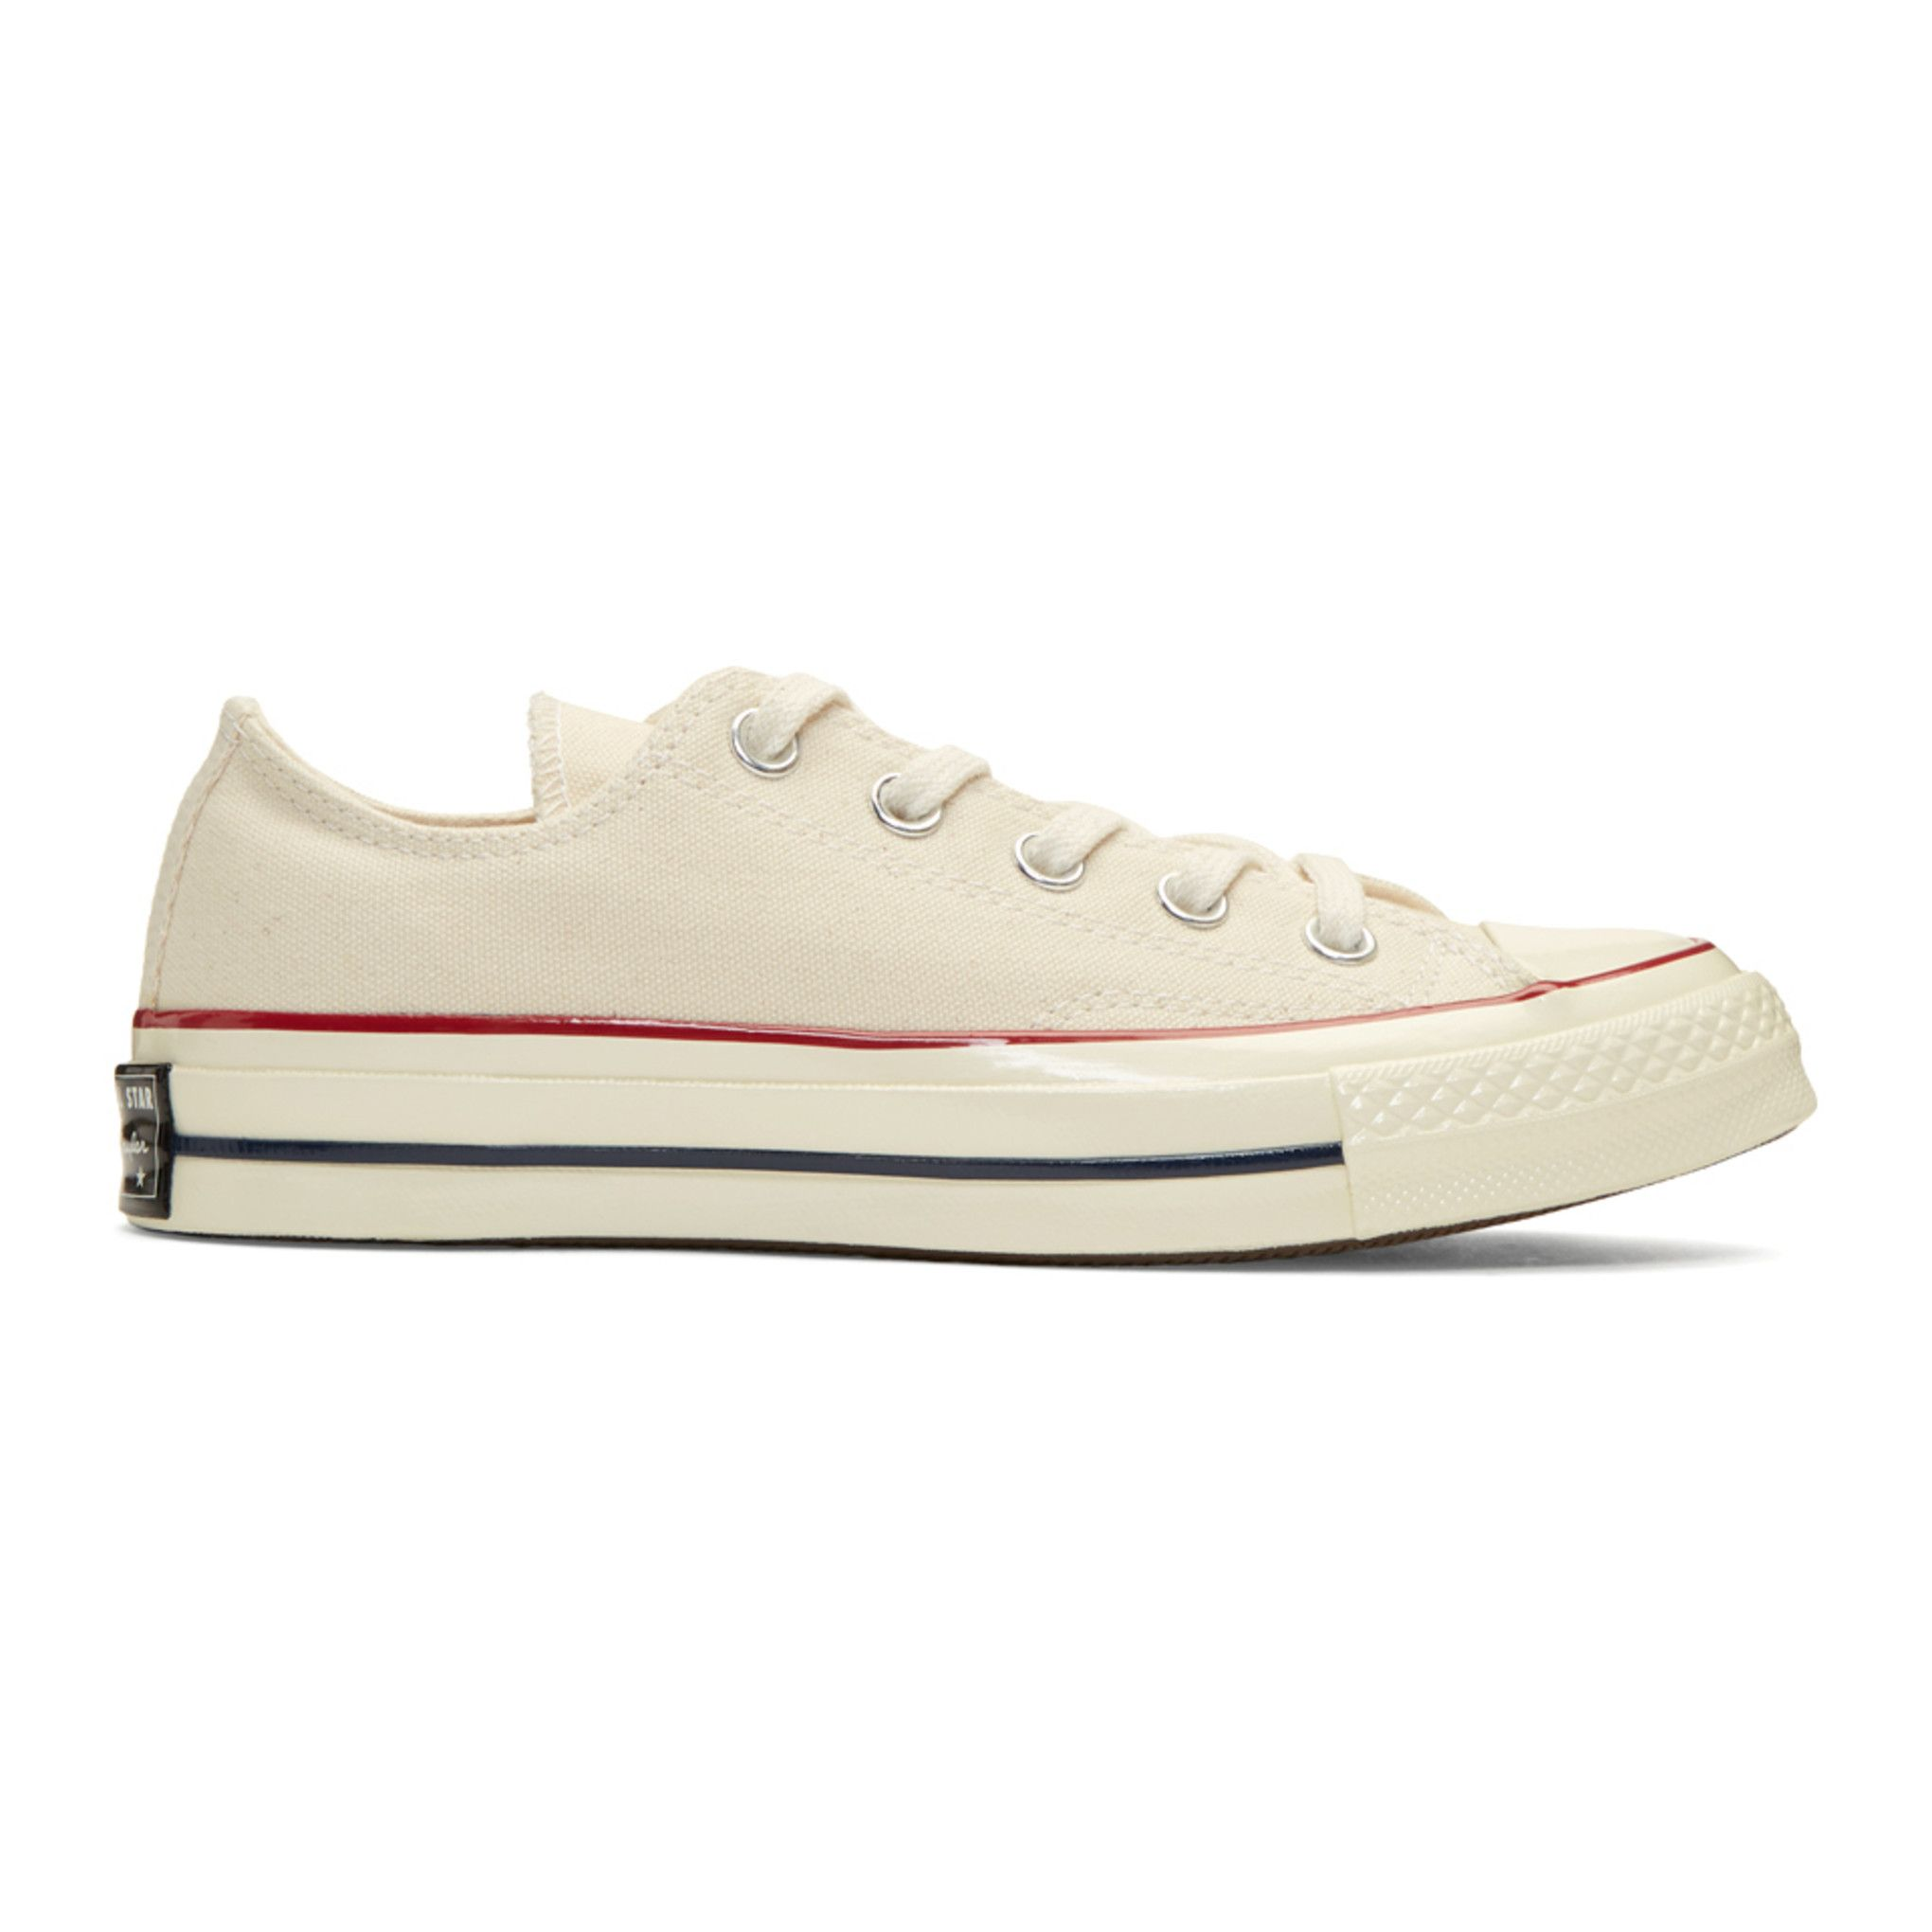 8a11f2727a2718 Converse - Off-White Chuck Taylor All-Star  70 Low-Top Sneakers ...